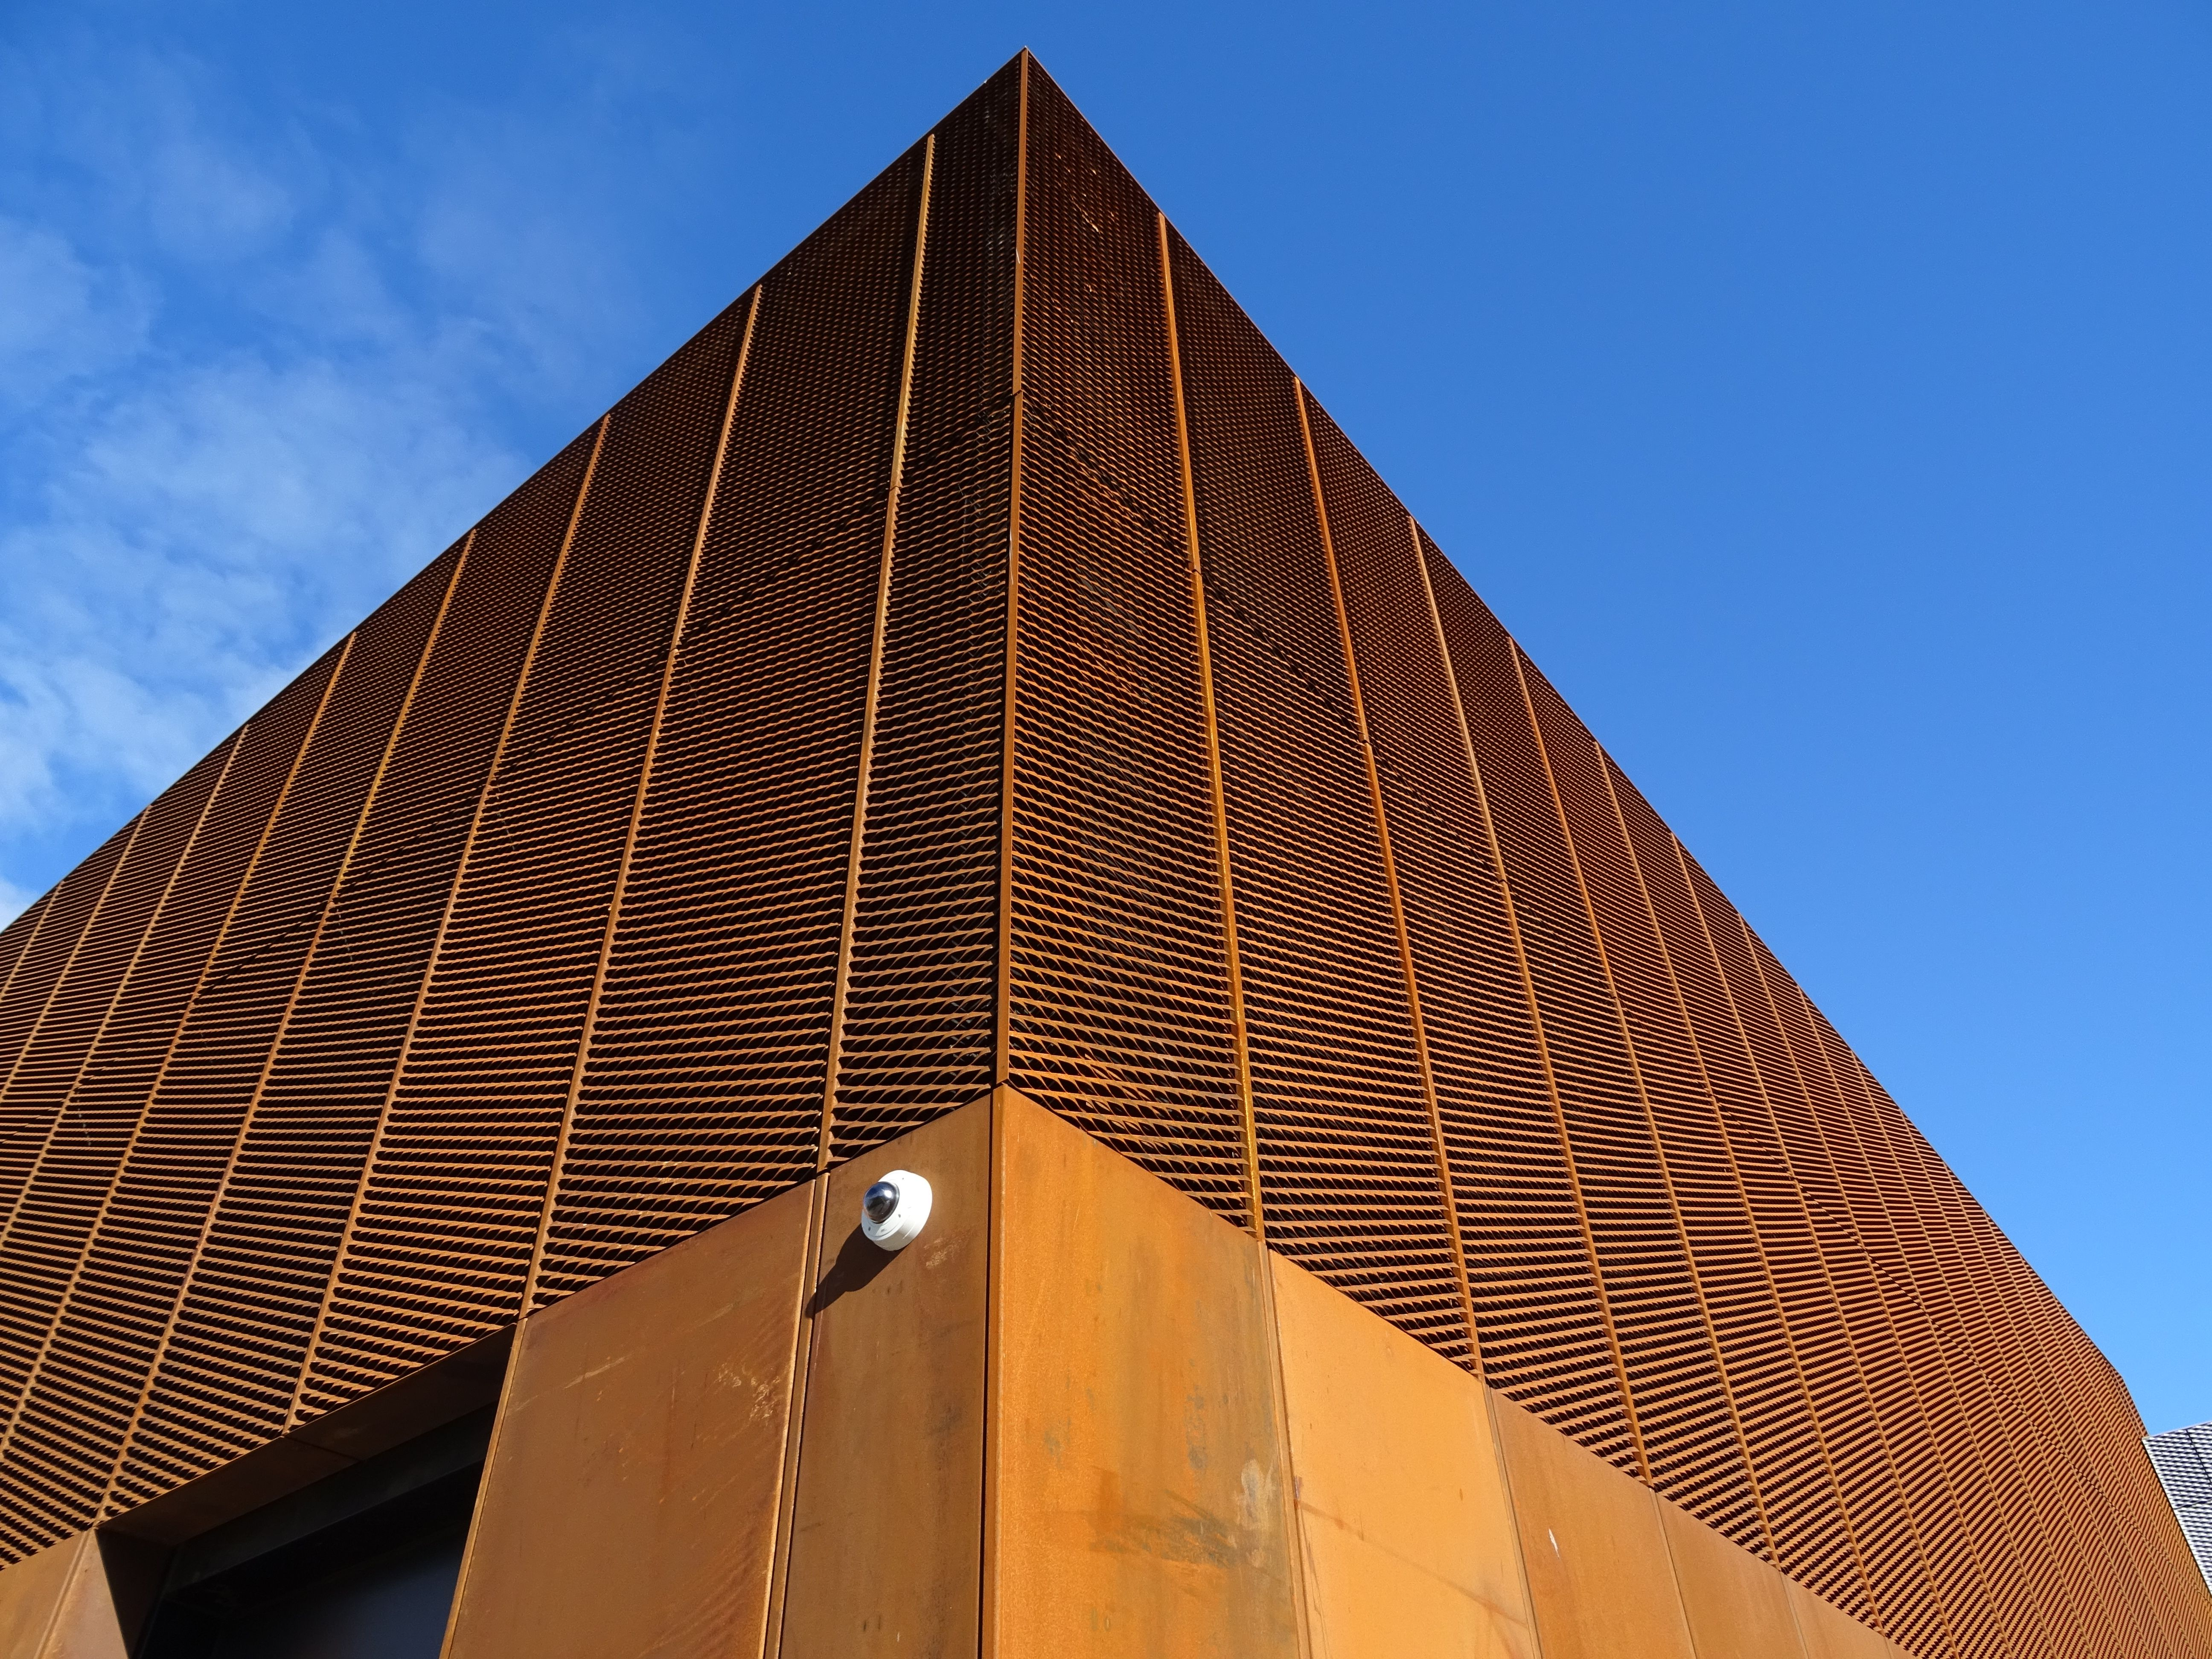 corten mesh facade hebburn community hub gardens. Black Bedroom Furniture Sets. Home Design Ideas